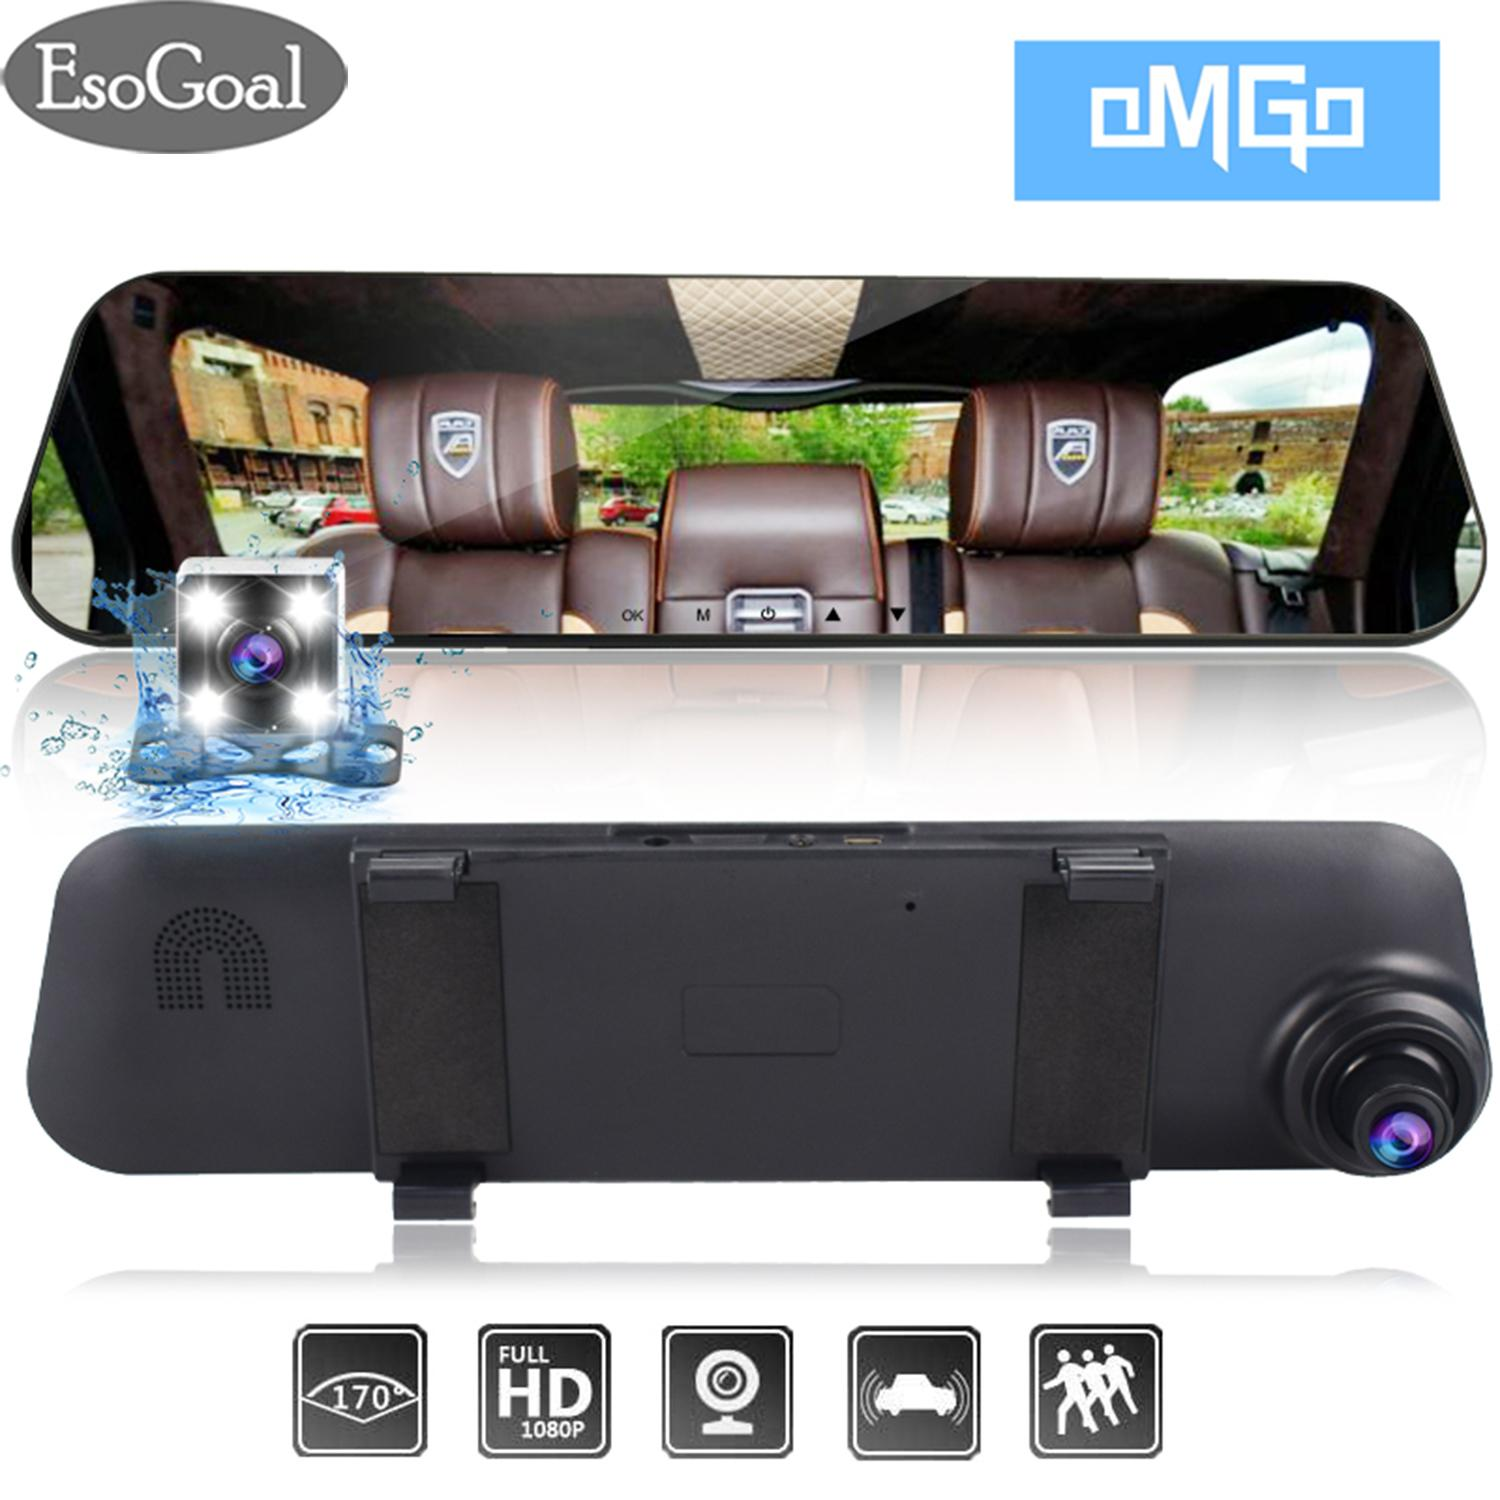 EsoGoal Car DVR, Dash Cam Mirror Rear View Mirror Camera, Car Video Recorder ,